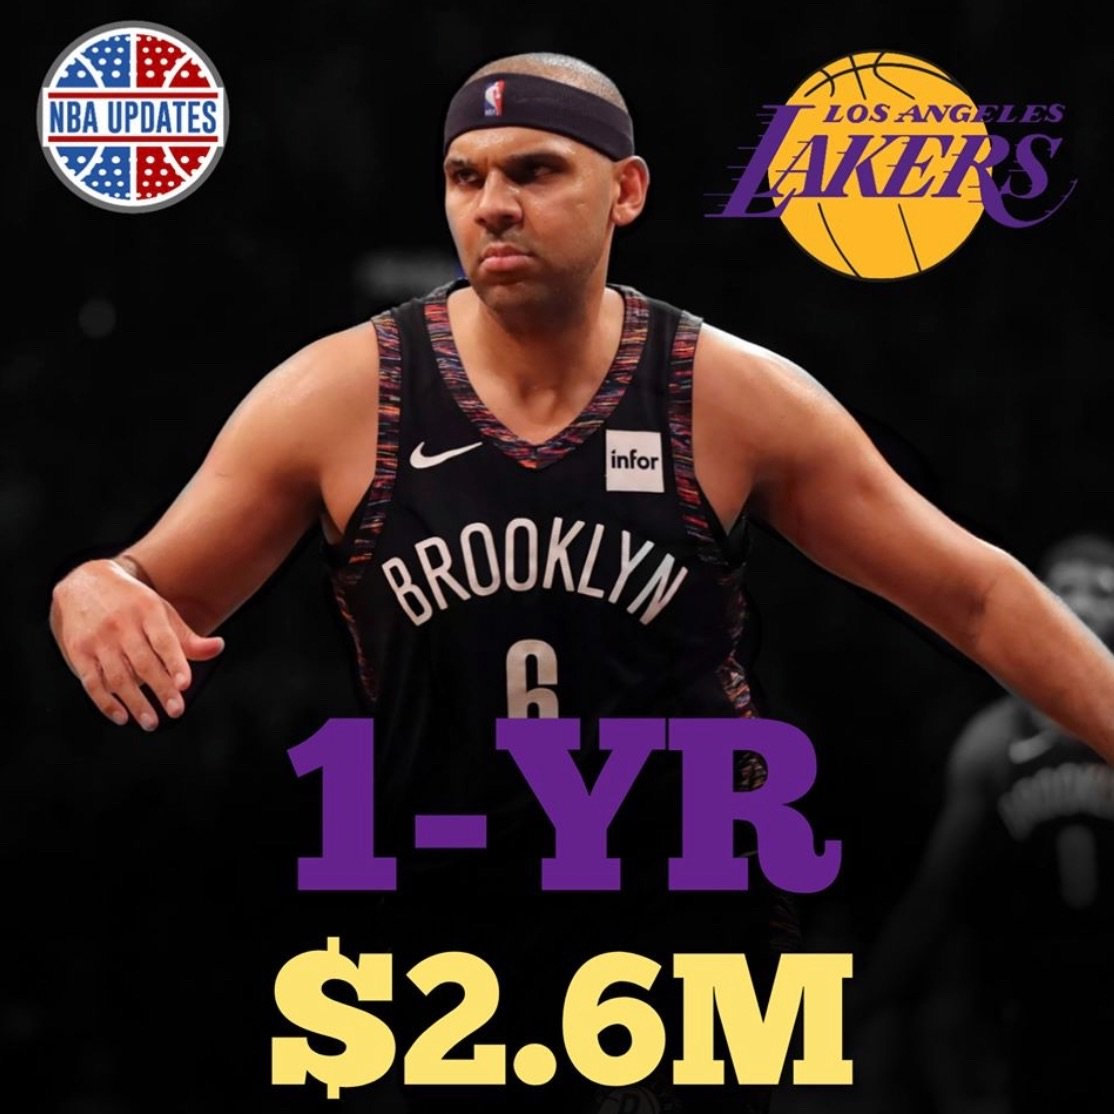 My bro @JaredDudley619 keep getting them 💰💰💰! Great pick up by the Lakers, congrats bro! https://t.co/AF5BQiCTfD